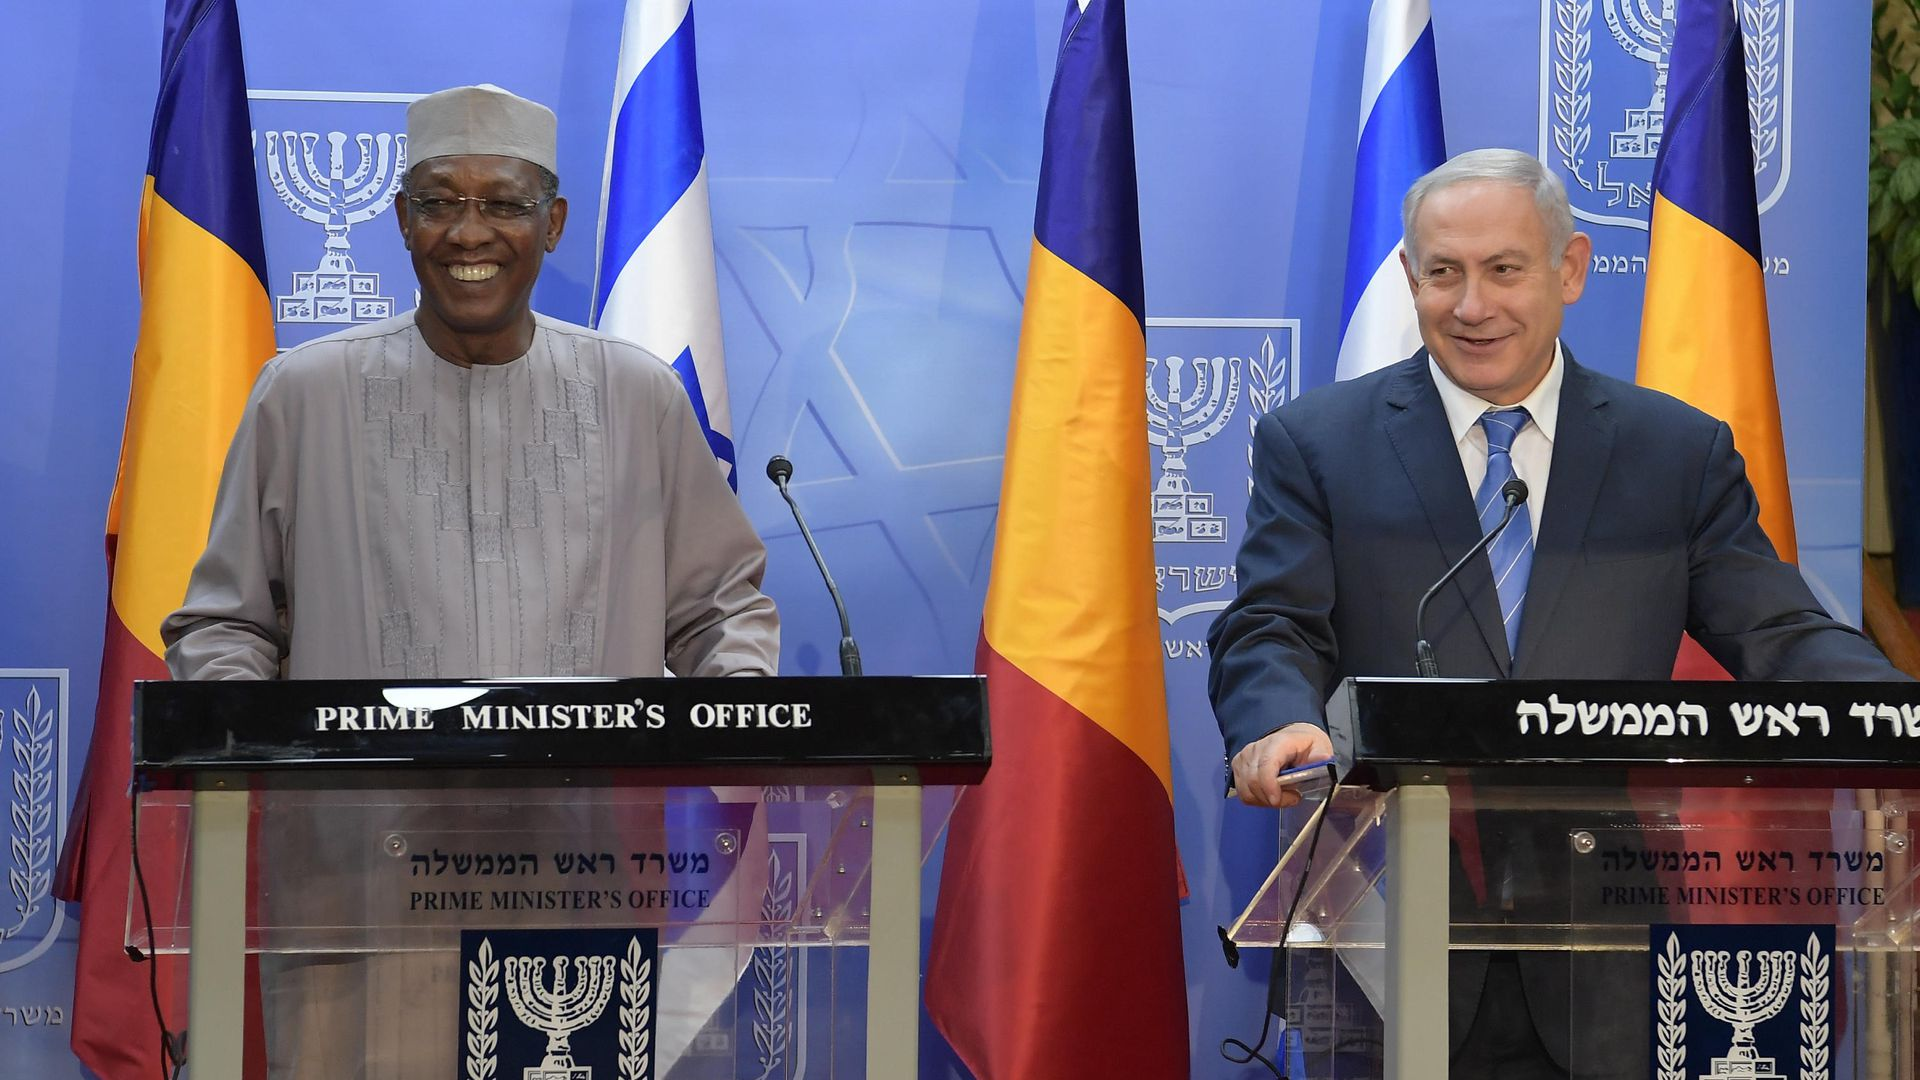 President of Chad made military hardware demand on historic Israel trip